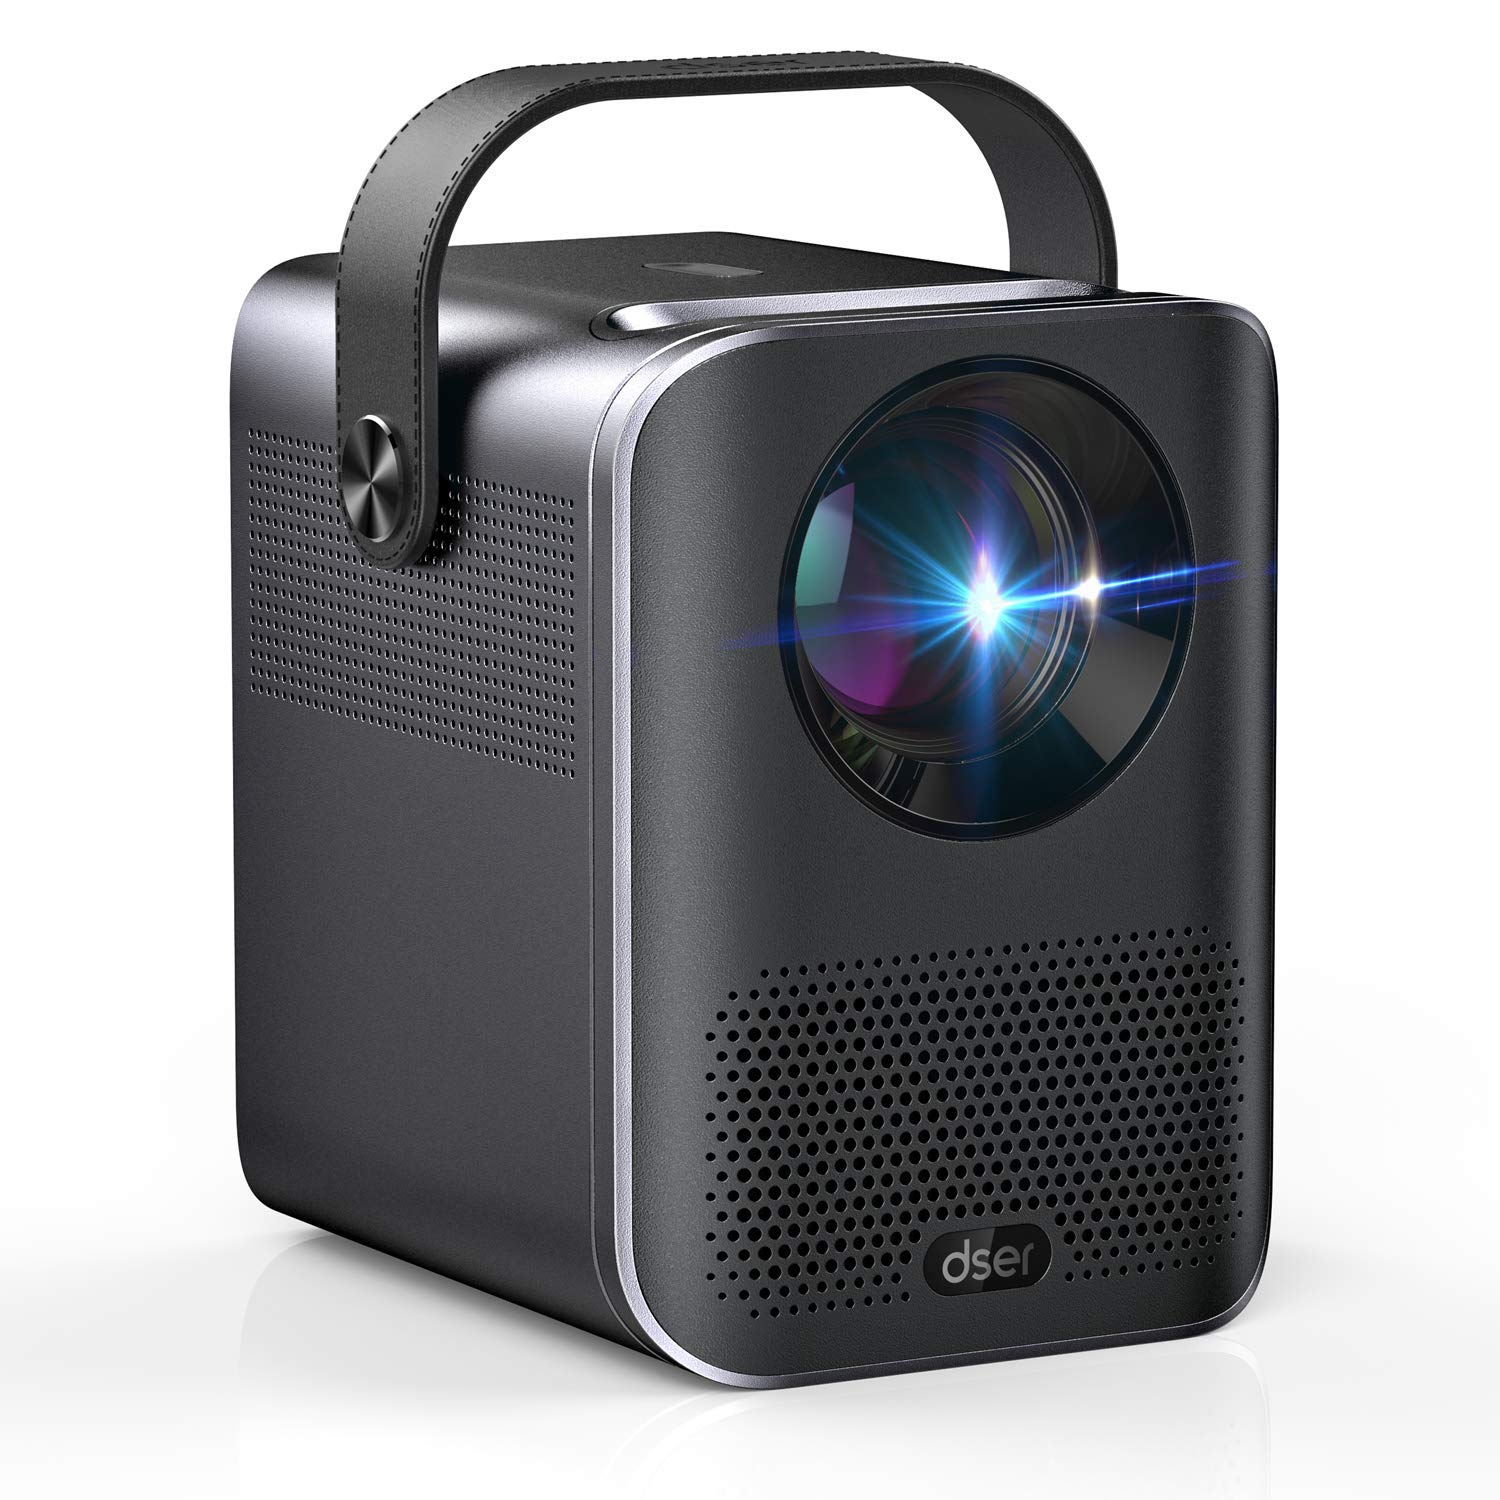 """Projector, dser Portable Movie Projector 1080P Supported with 60,000 Hrs LED, 160"""" Display 150ANSI 4000 Lumen Home Theater Mini Video Projector Compatible with Fire TV, Laptops, PC, PS4, HDMI, USB"""